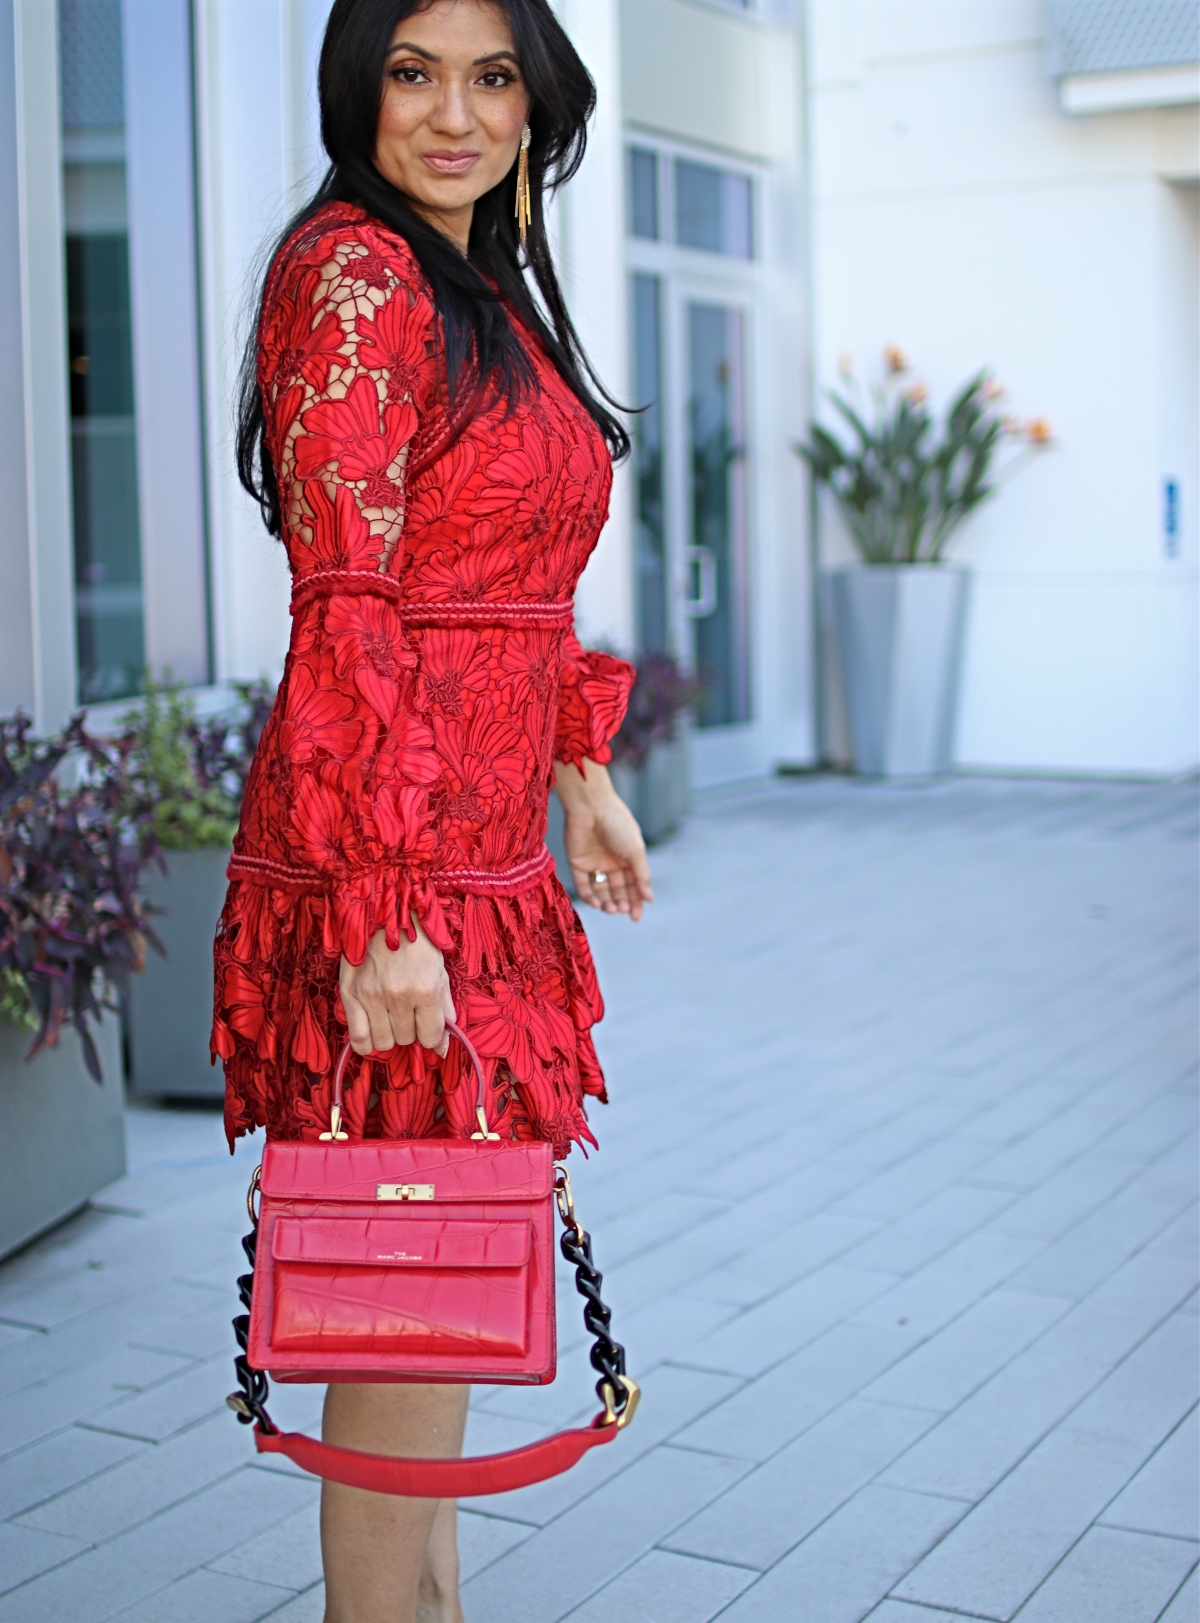 Looking for the perfect Valentine's Day dress? Orange County Lifestyle Blogger Debbie Savage is sharing her favorite Valentine's Day dresses. Click to see them HERE!